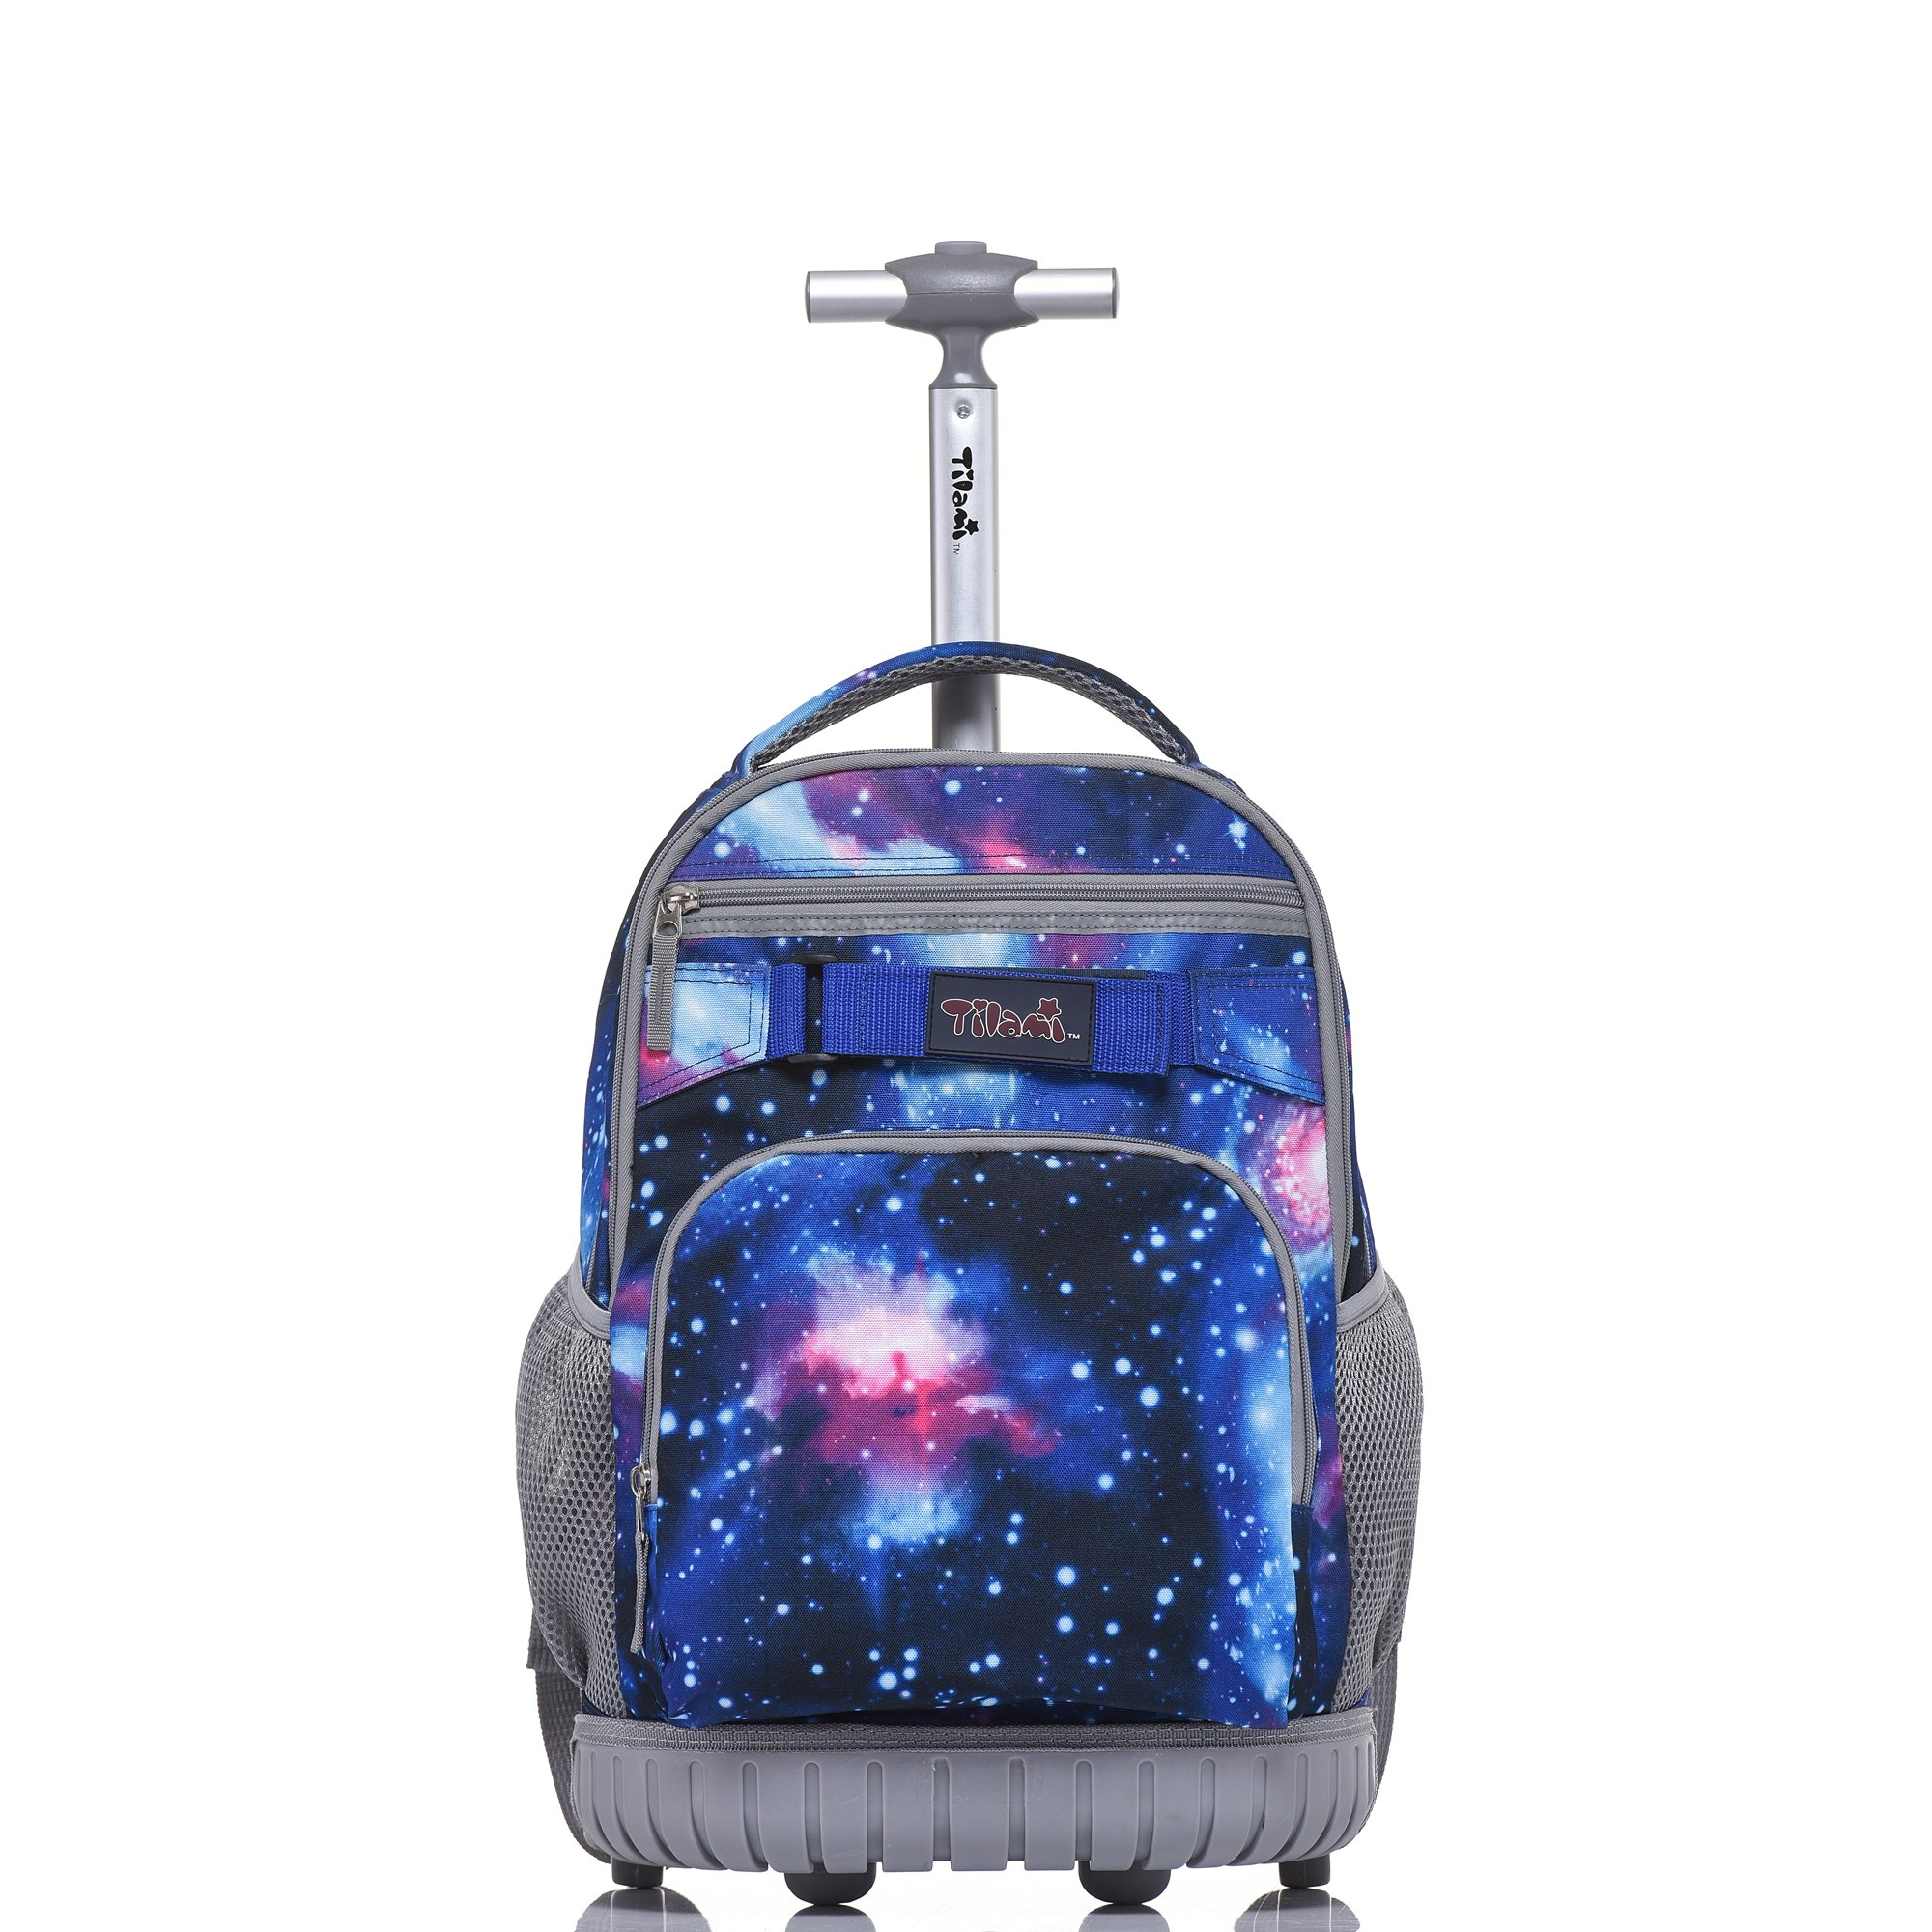 Tilami New Antifouling Design 18 Inch Oversized Load Multi-Compartment Wheeled Rolling Backpack Luggage for Kids (Blue Galaxy 1)